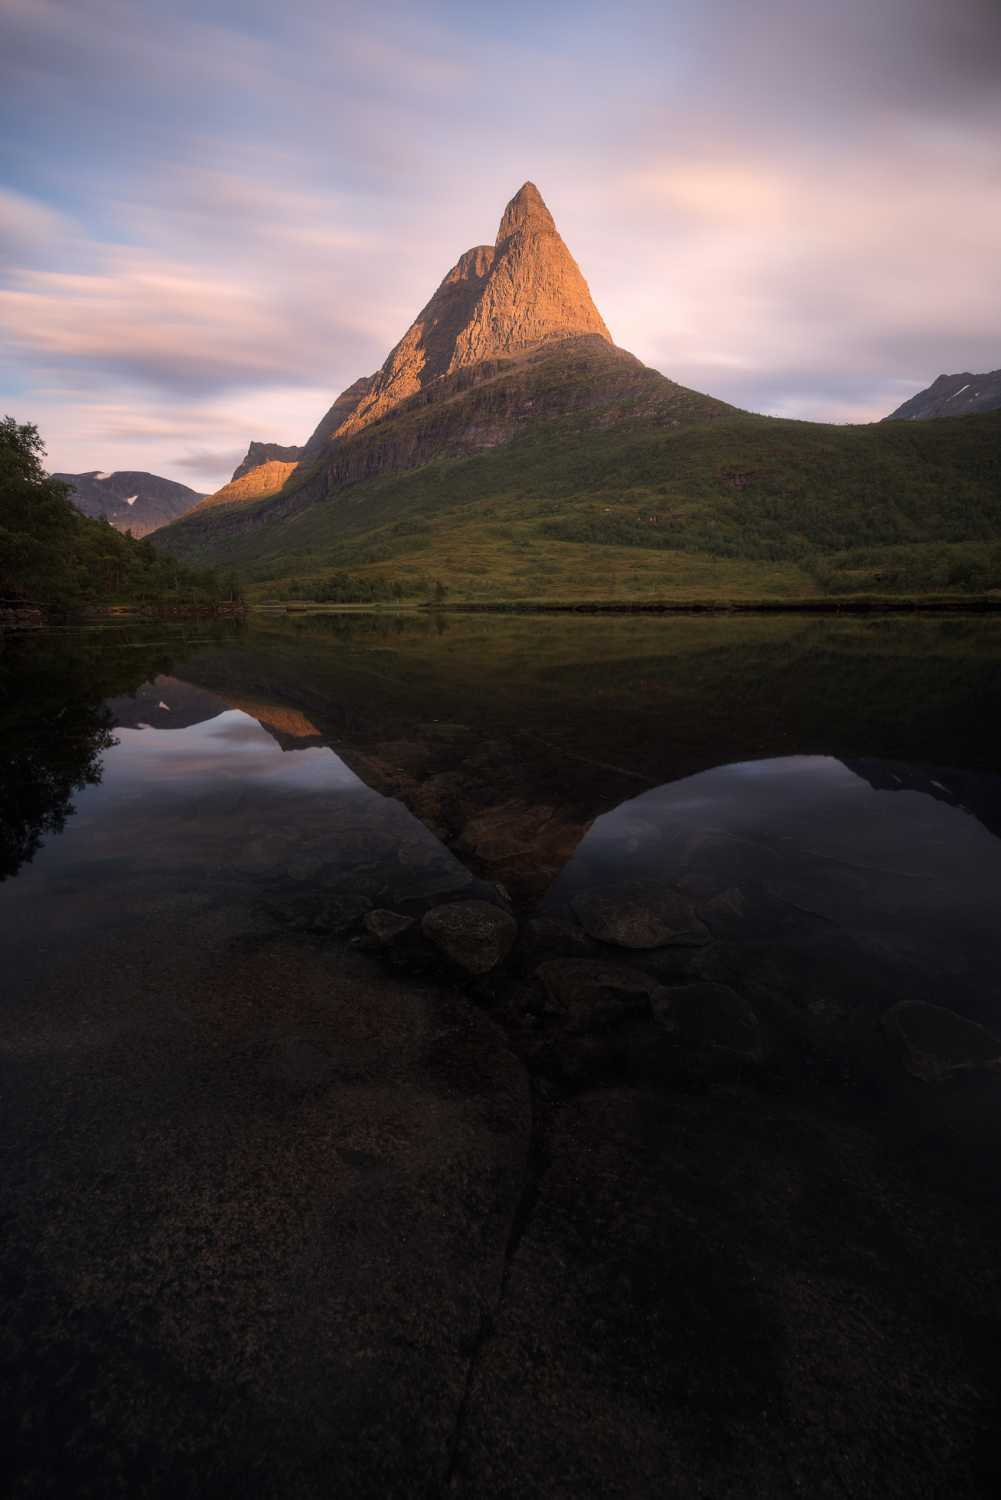 https://i1.wp.com/digital-photography-school.com/wp-content/uploads/2018/07/Norway-Innerdalen-Sunset-e1533033437450.jpg?resize=1001%2C1500&ssl=1